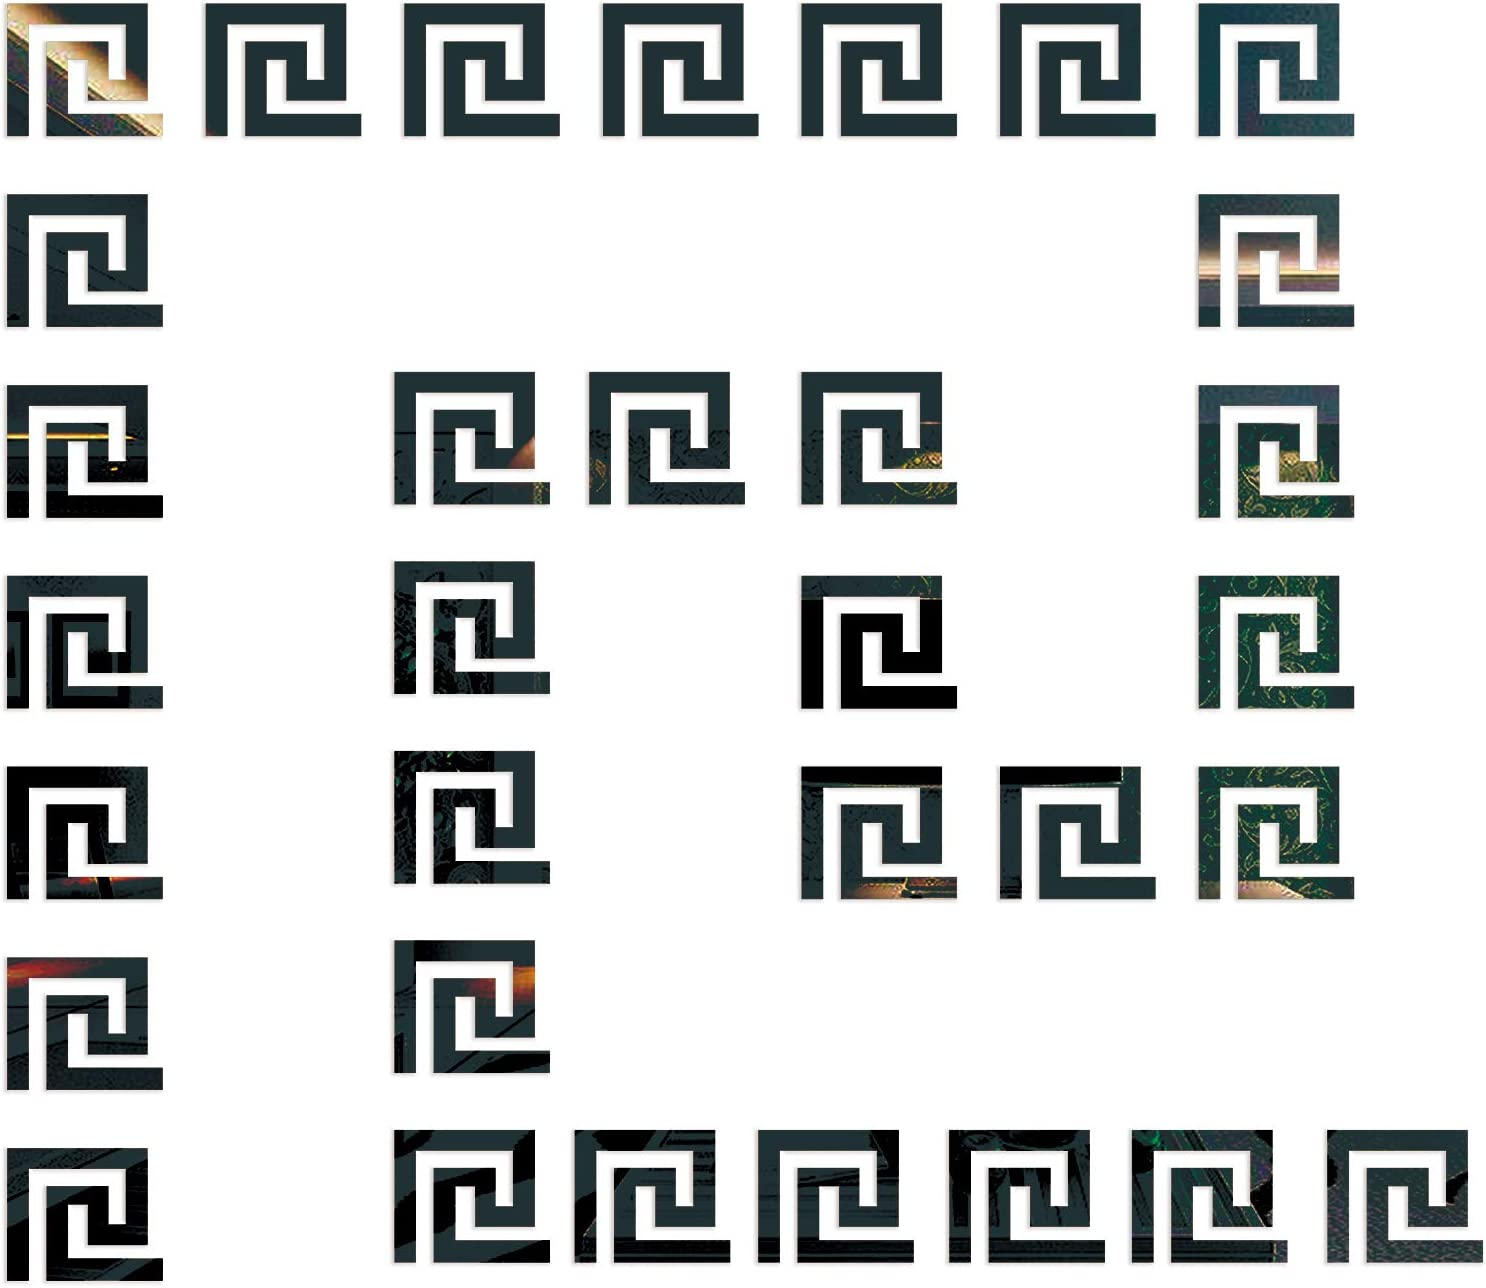 30 Pieces Black Acrylic Mirror Stickers Tiles Self Adhesive 3D Geometric Greek Key Pattern for Wall Decor Living Room Bedroom Bathroom Home Decals…